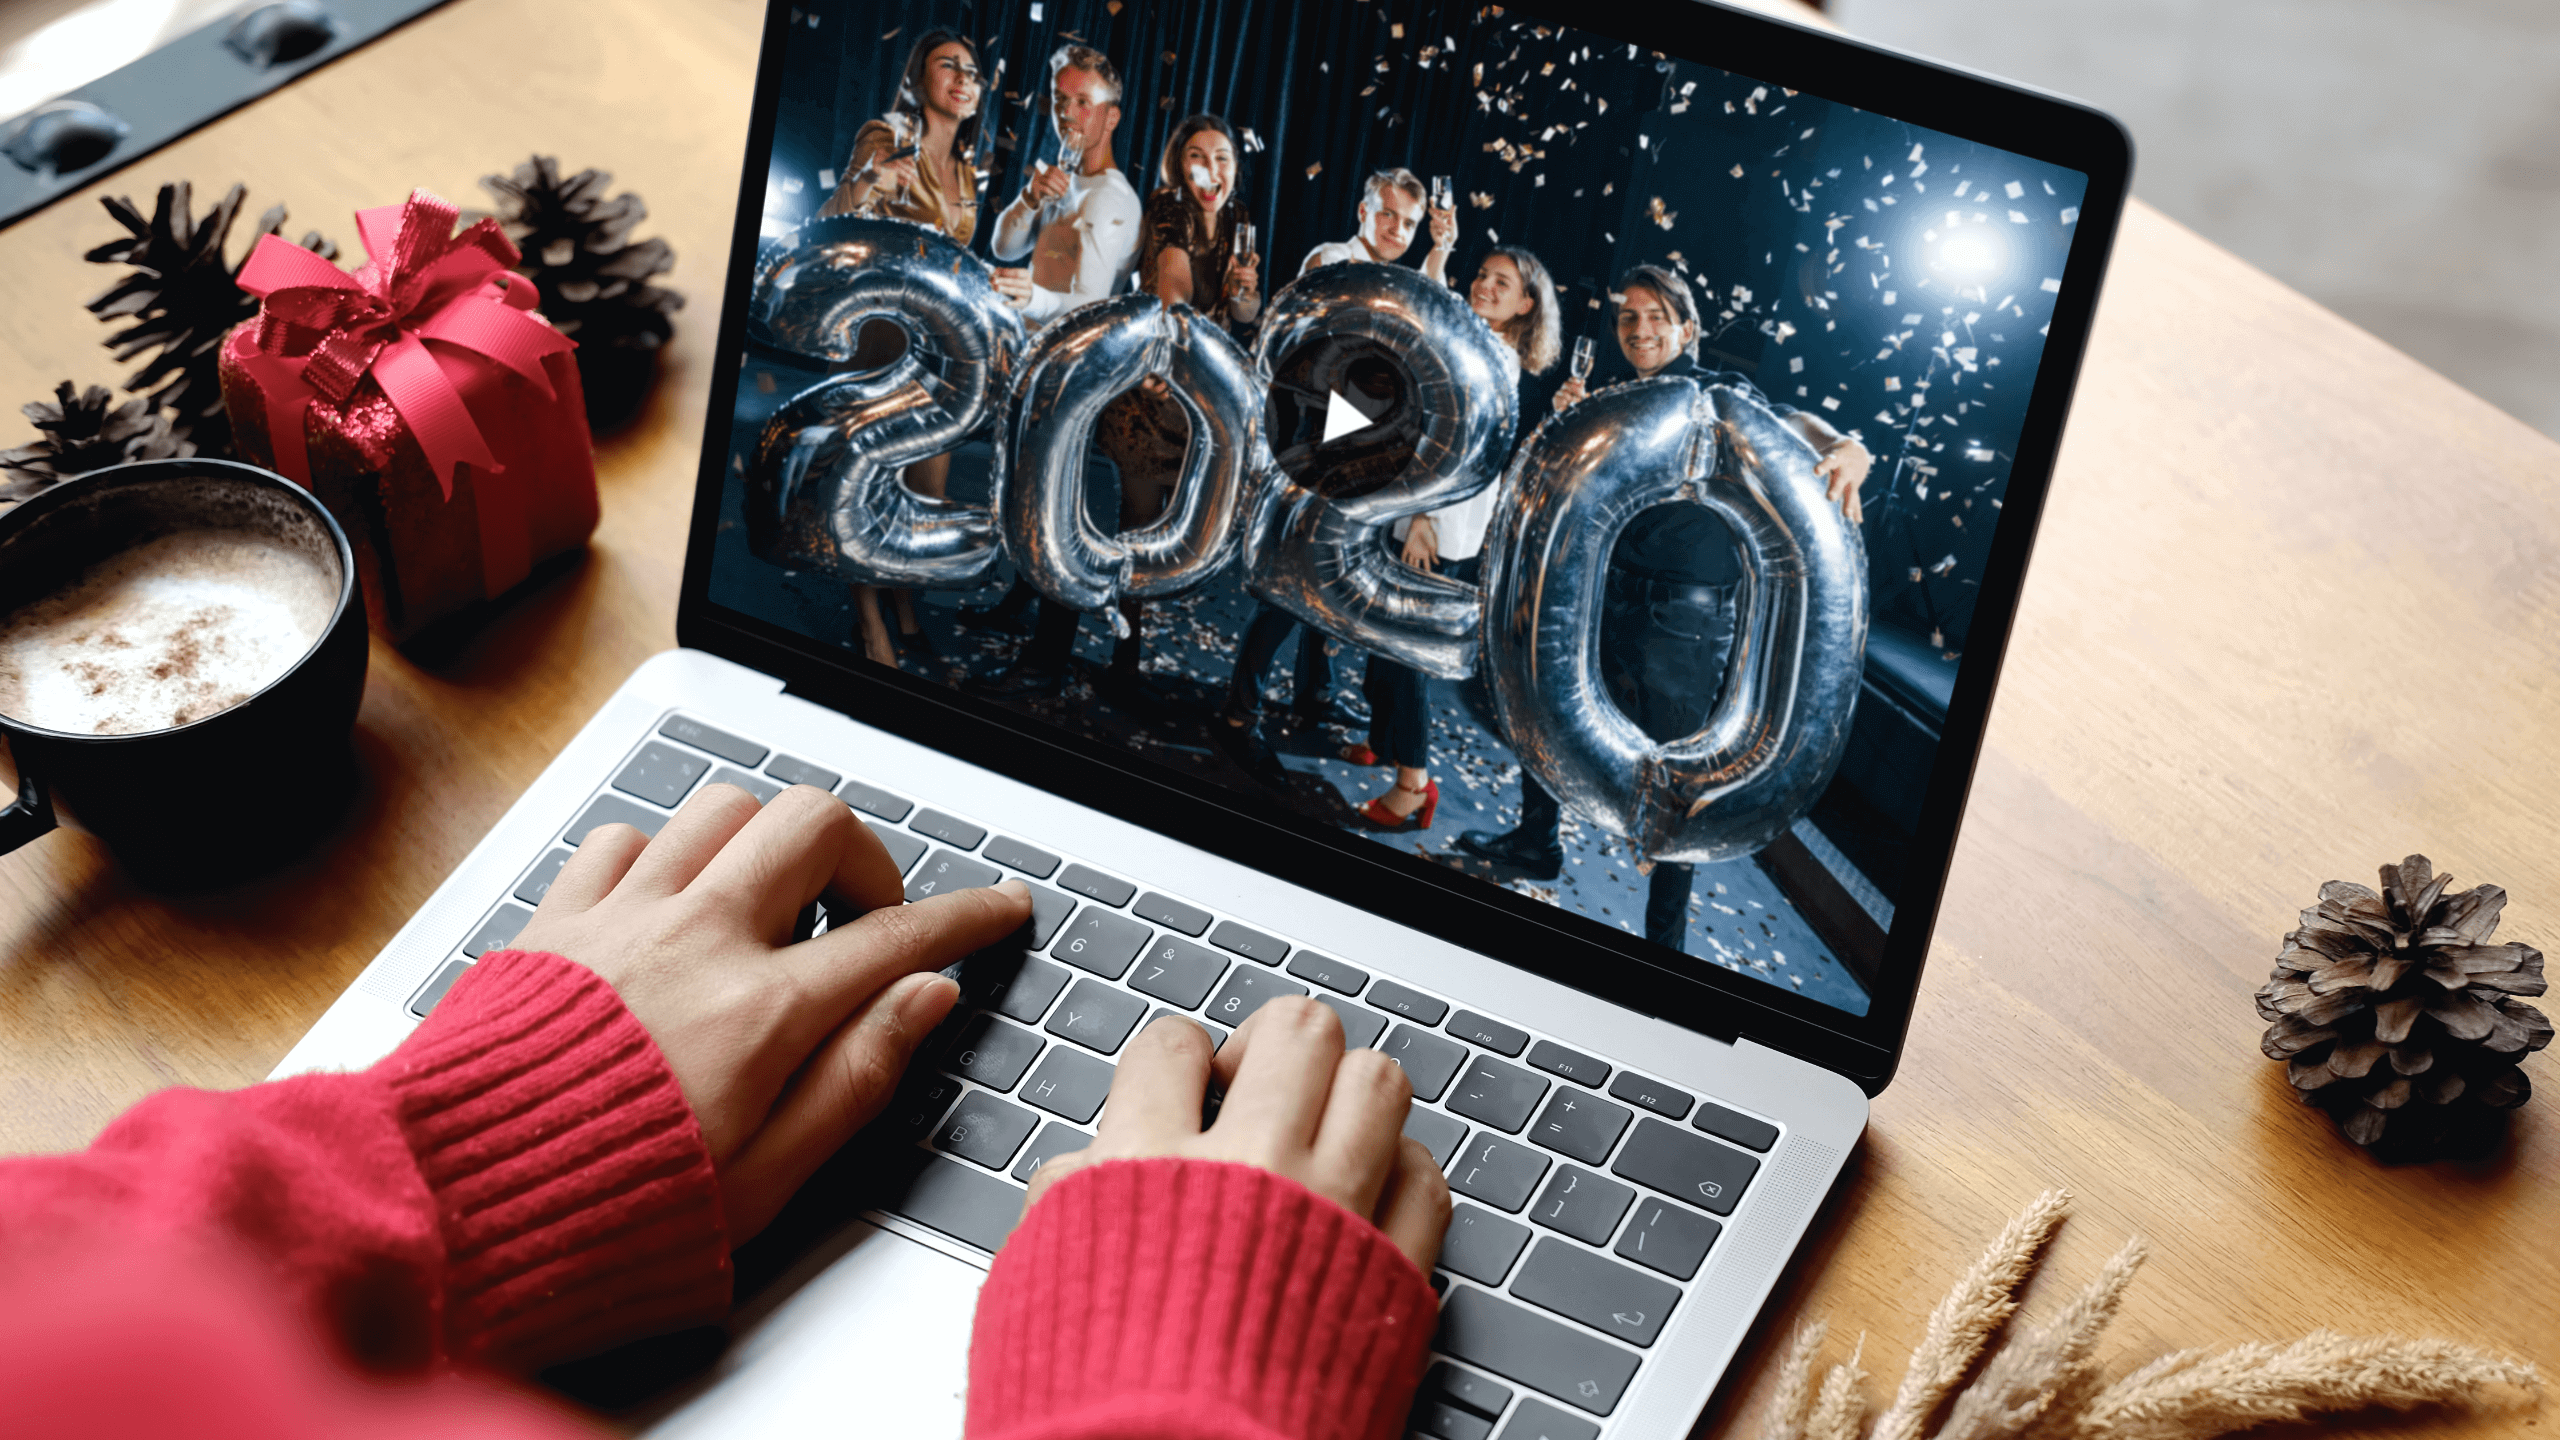 Woman watching New Year video on her laptop